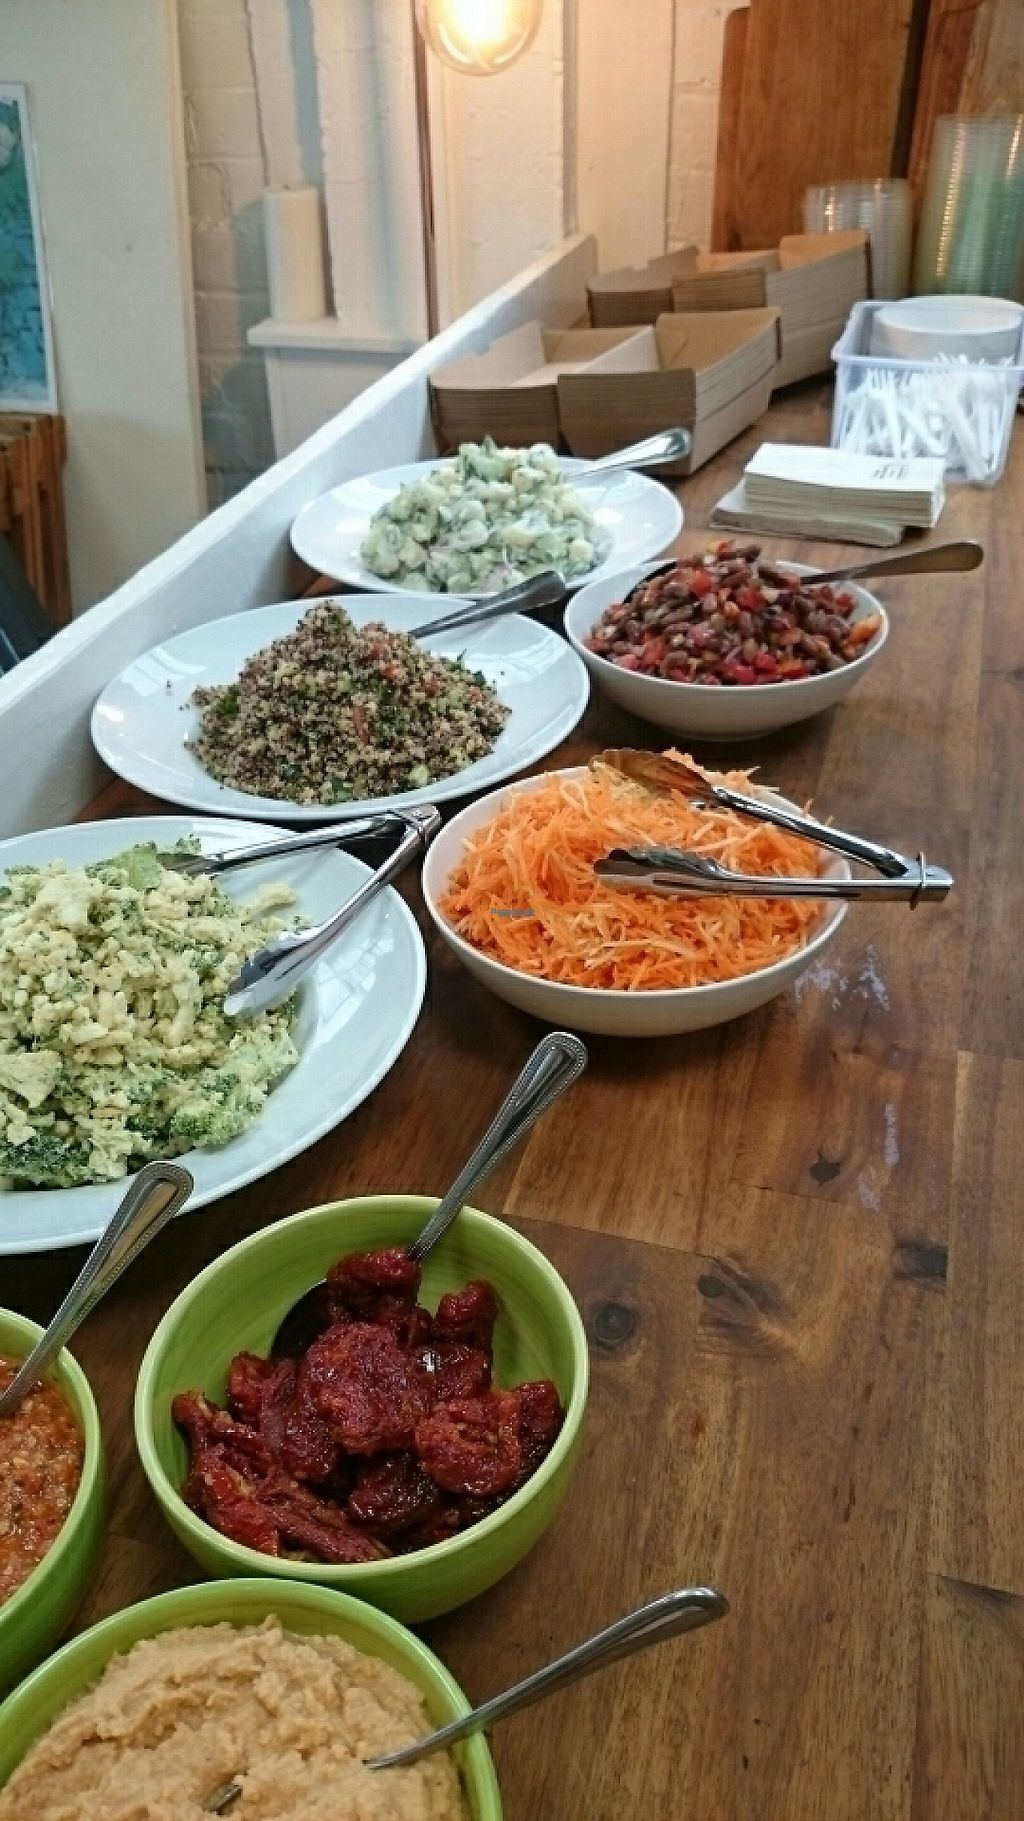 Yummy salads at the art kitchen in hastings